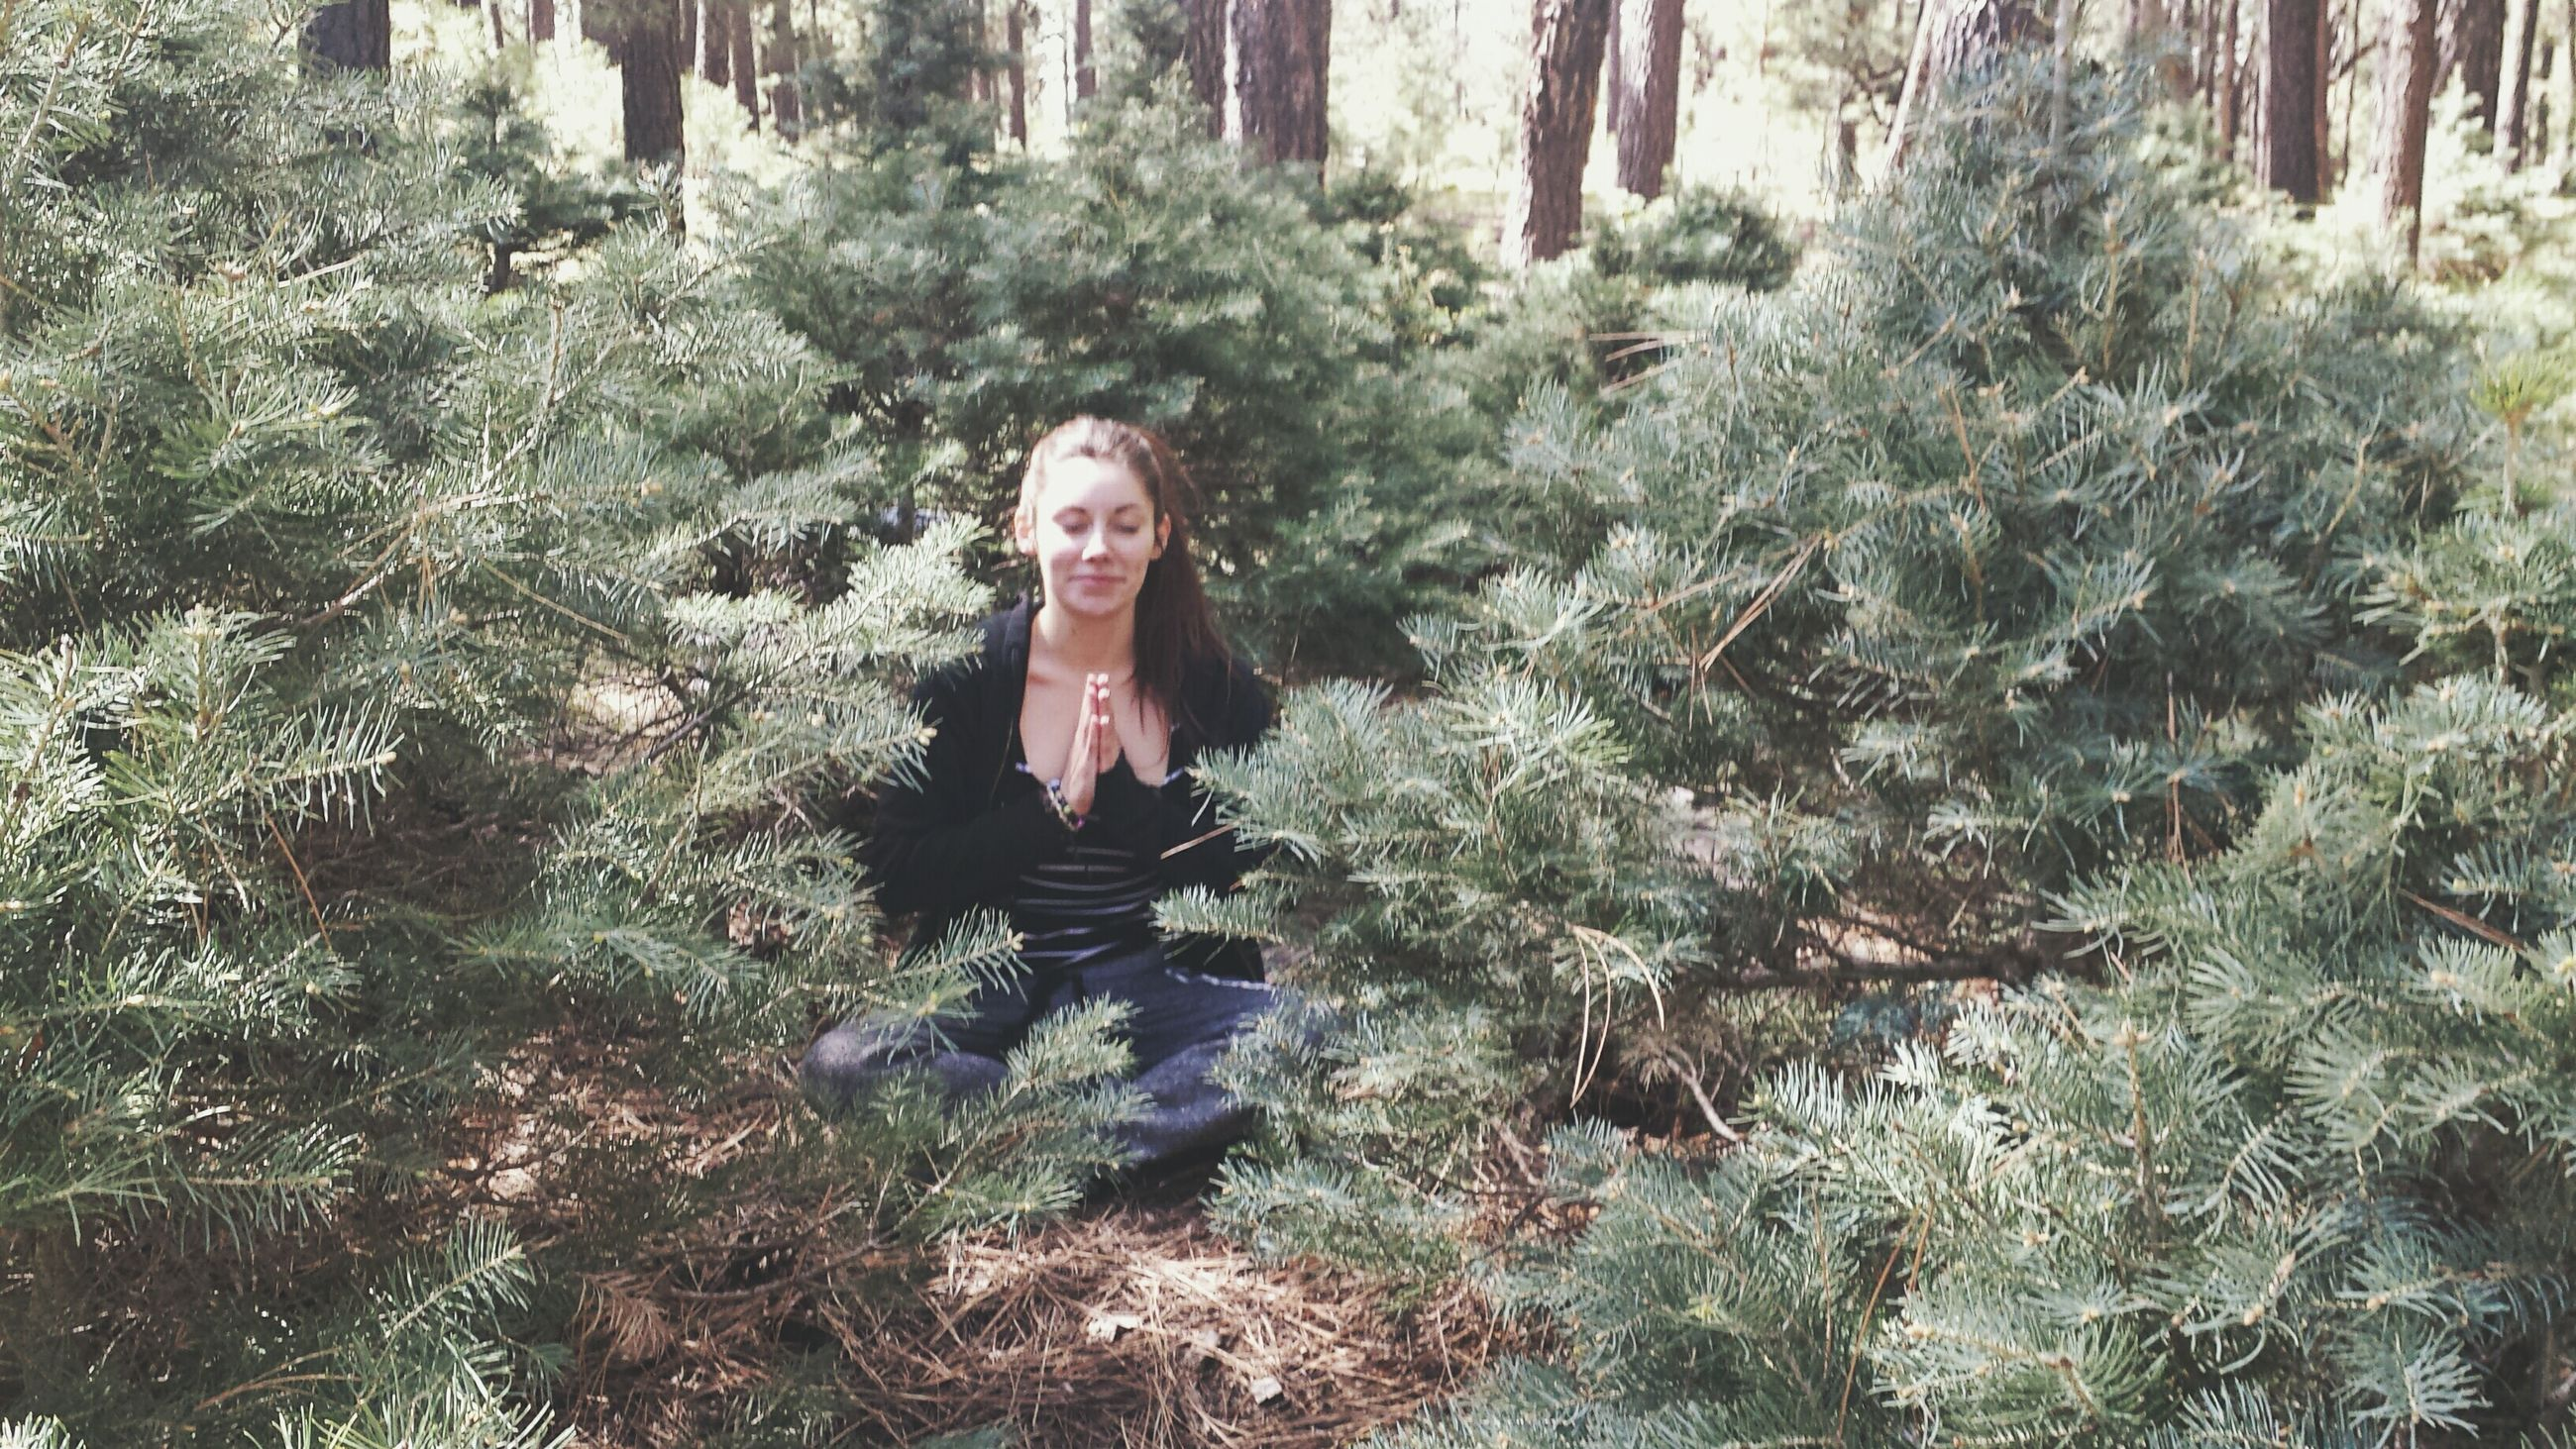 tree, forest, leisure activity, person, lifestyles, young adult, portrait, looking at camera, nature, woodland, tree trunk, front view, casual clothing, standing, tranquility, growth, young women, three quarter length